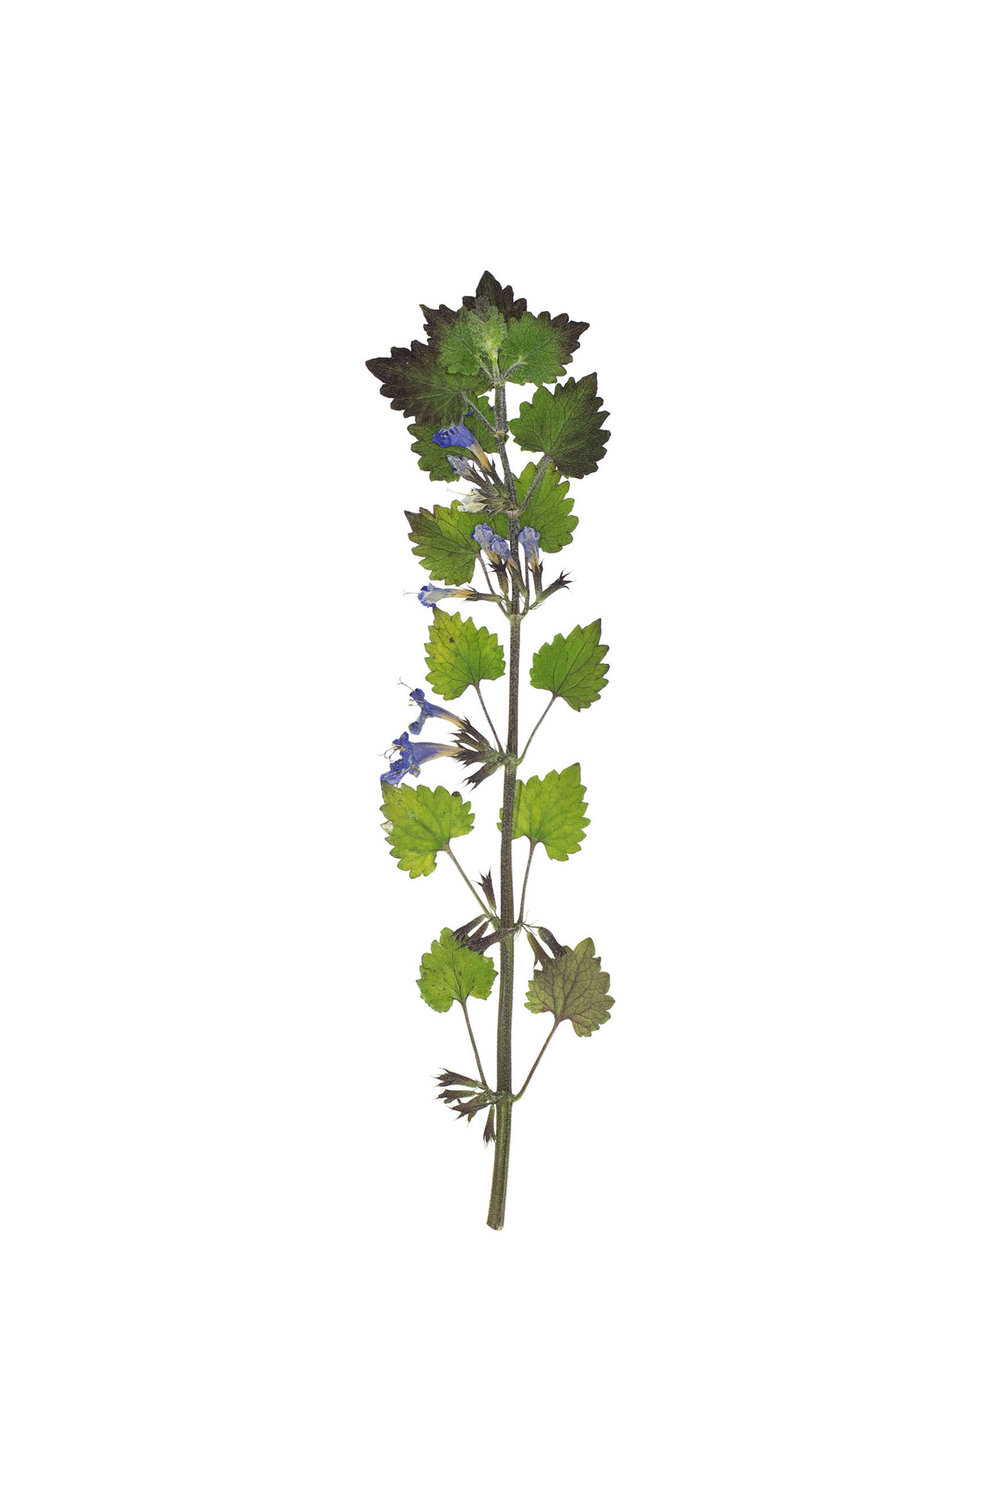 New! Ground Ivy / Glechoma hederacea